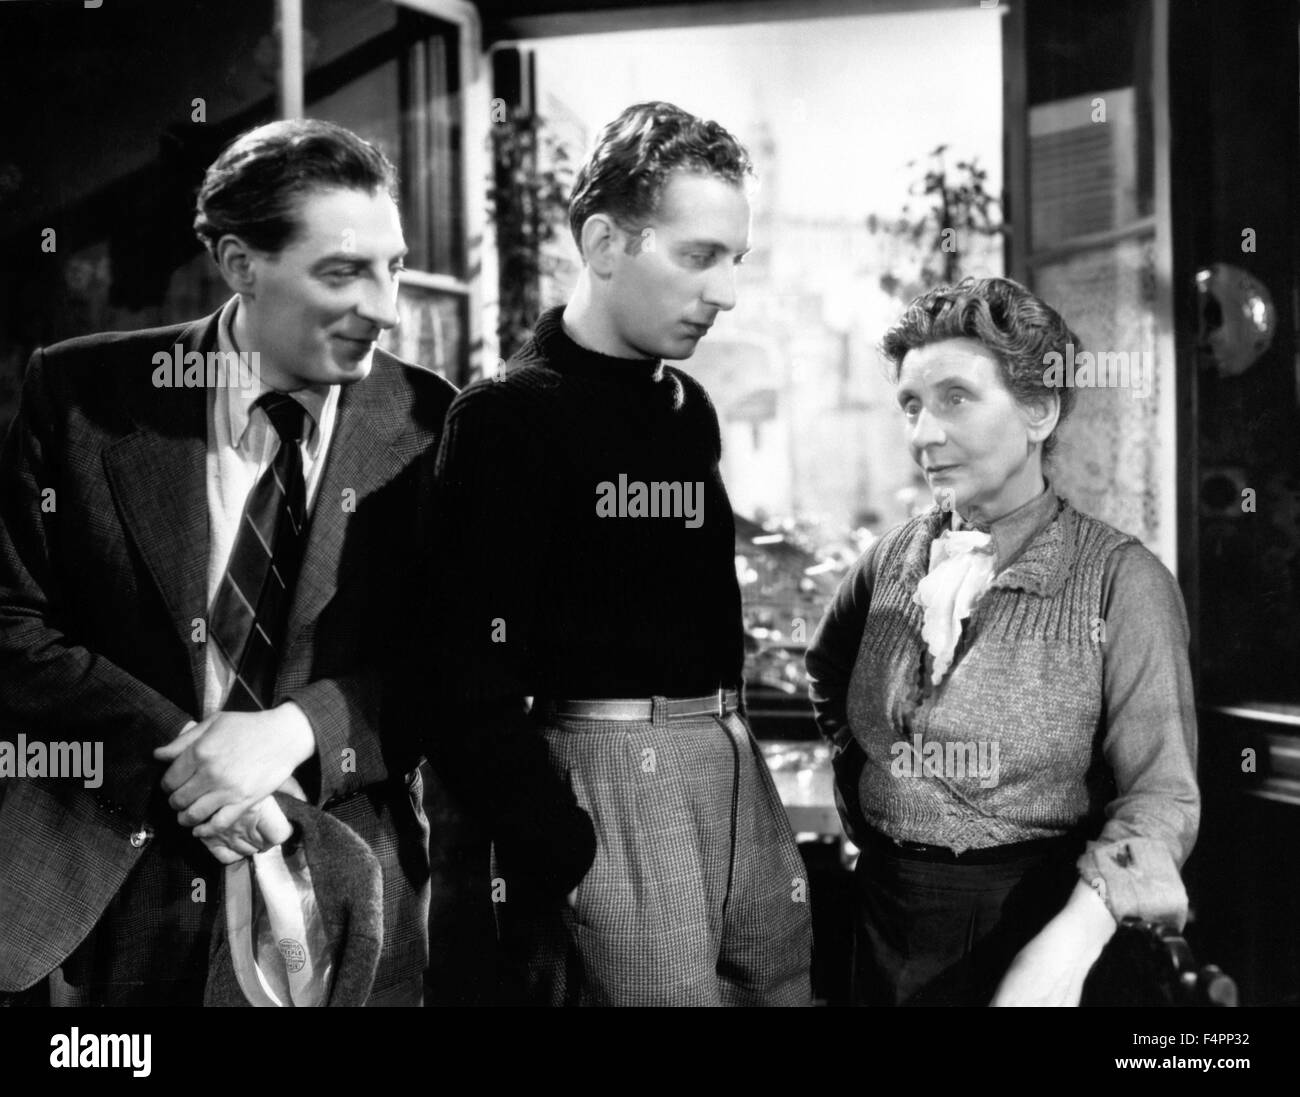 Jean tissier, Charles Trenet and Sylvie / Romance of Paris / 1941 directed  by Jean Boyer